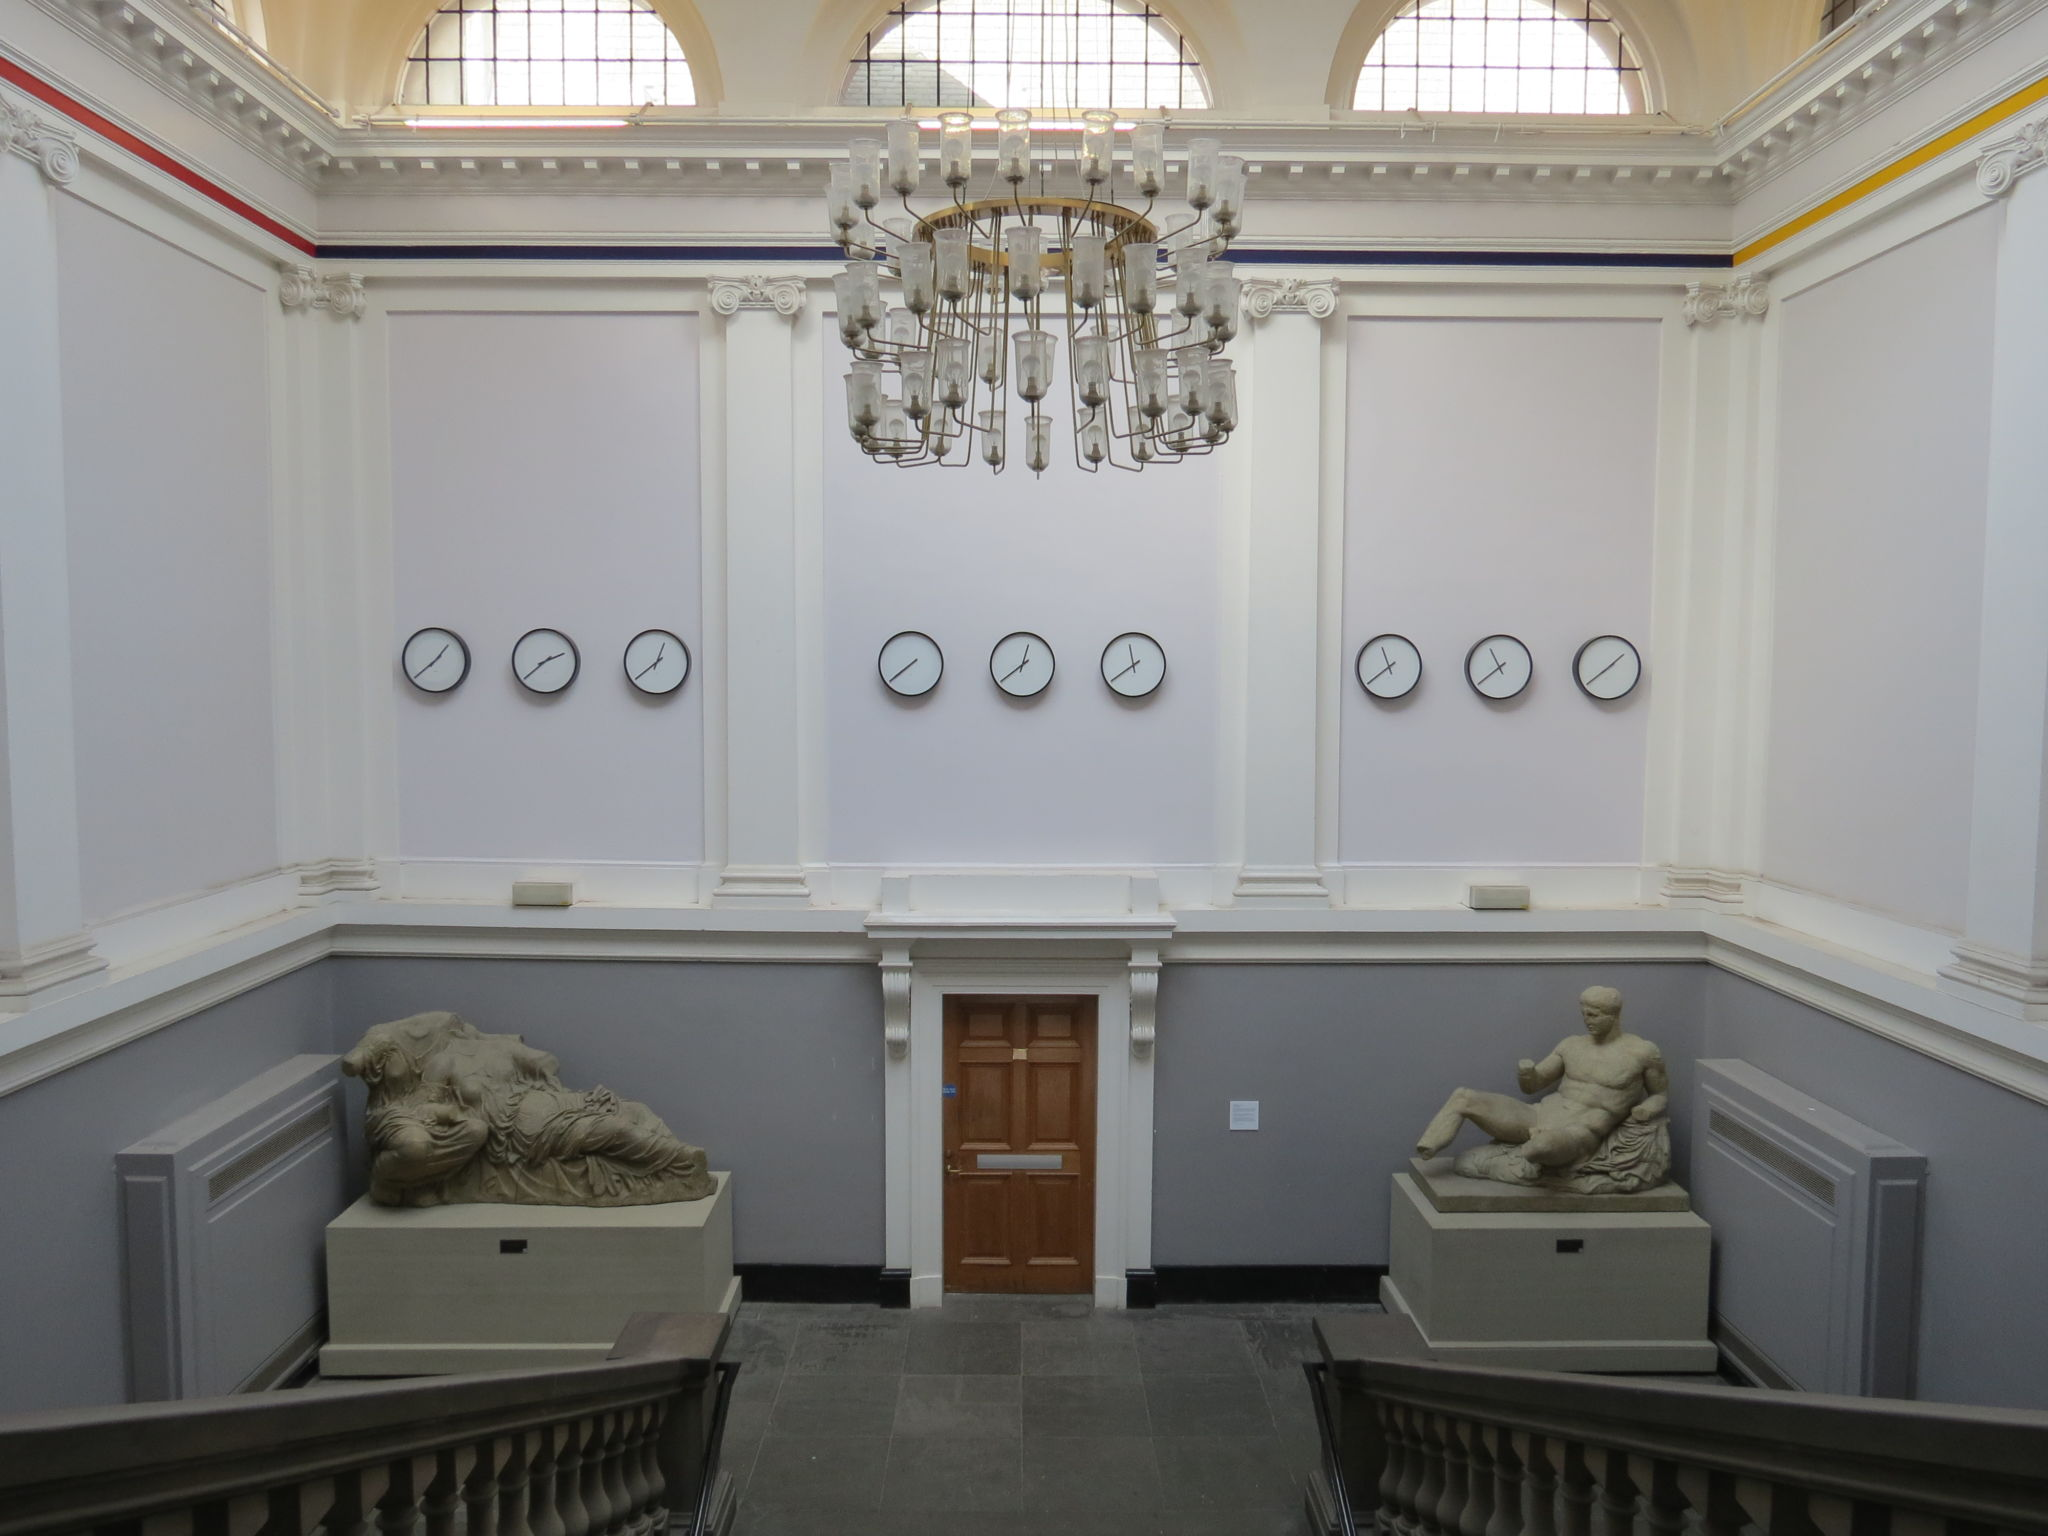 Timepieces (2014), Katie Paterson Part of the University of Edinburgh Art Collection. Installed in the Edinburgh College of Art Main Building.